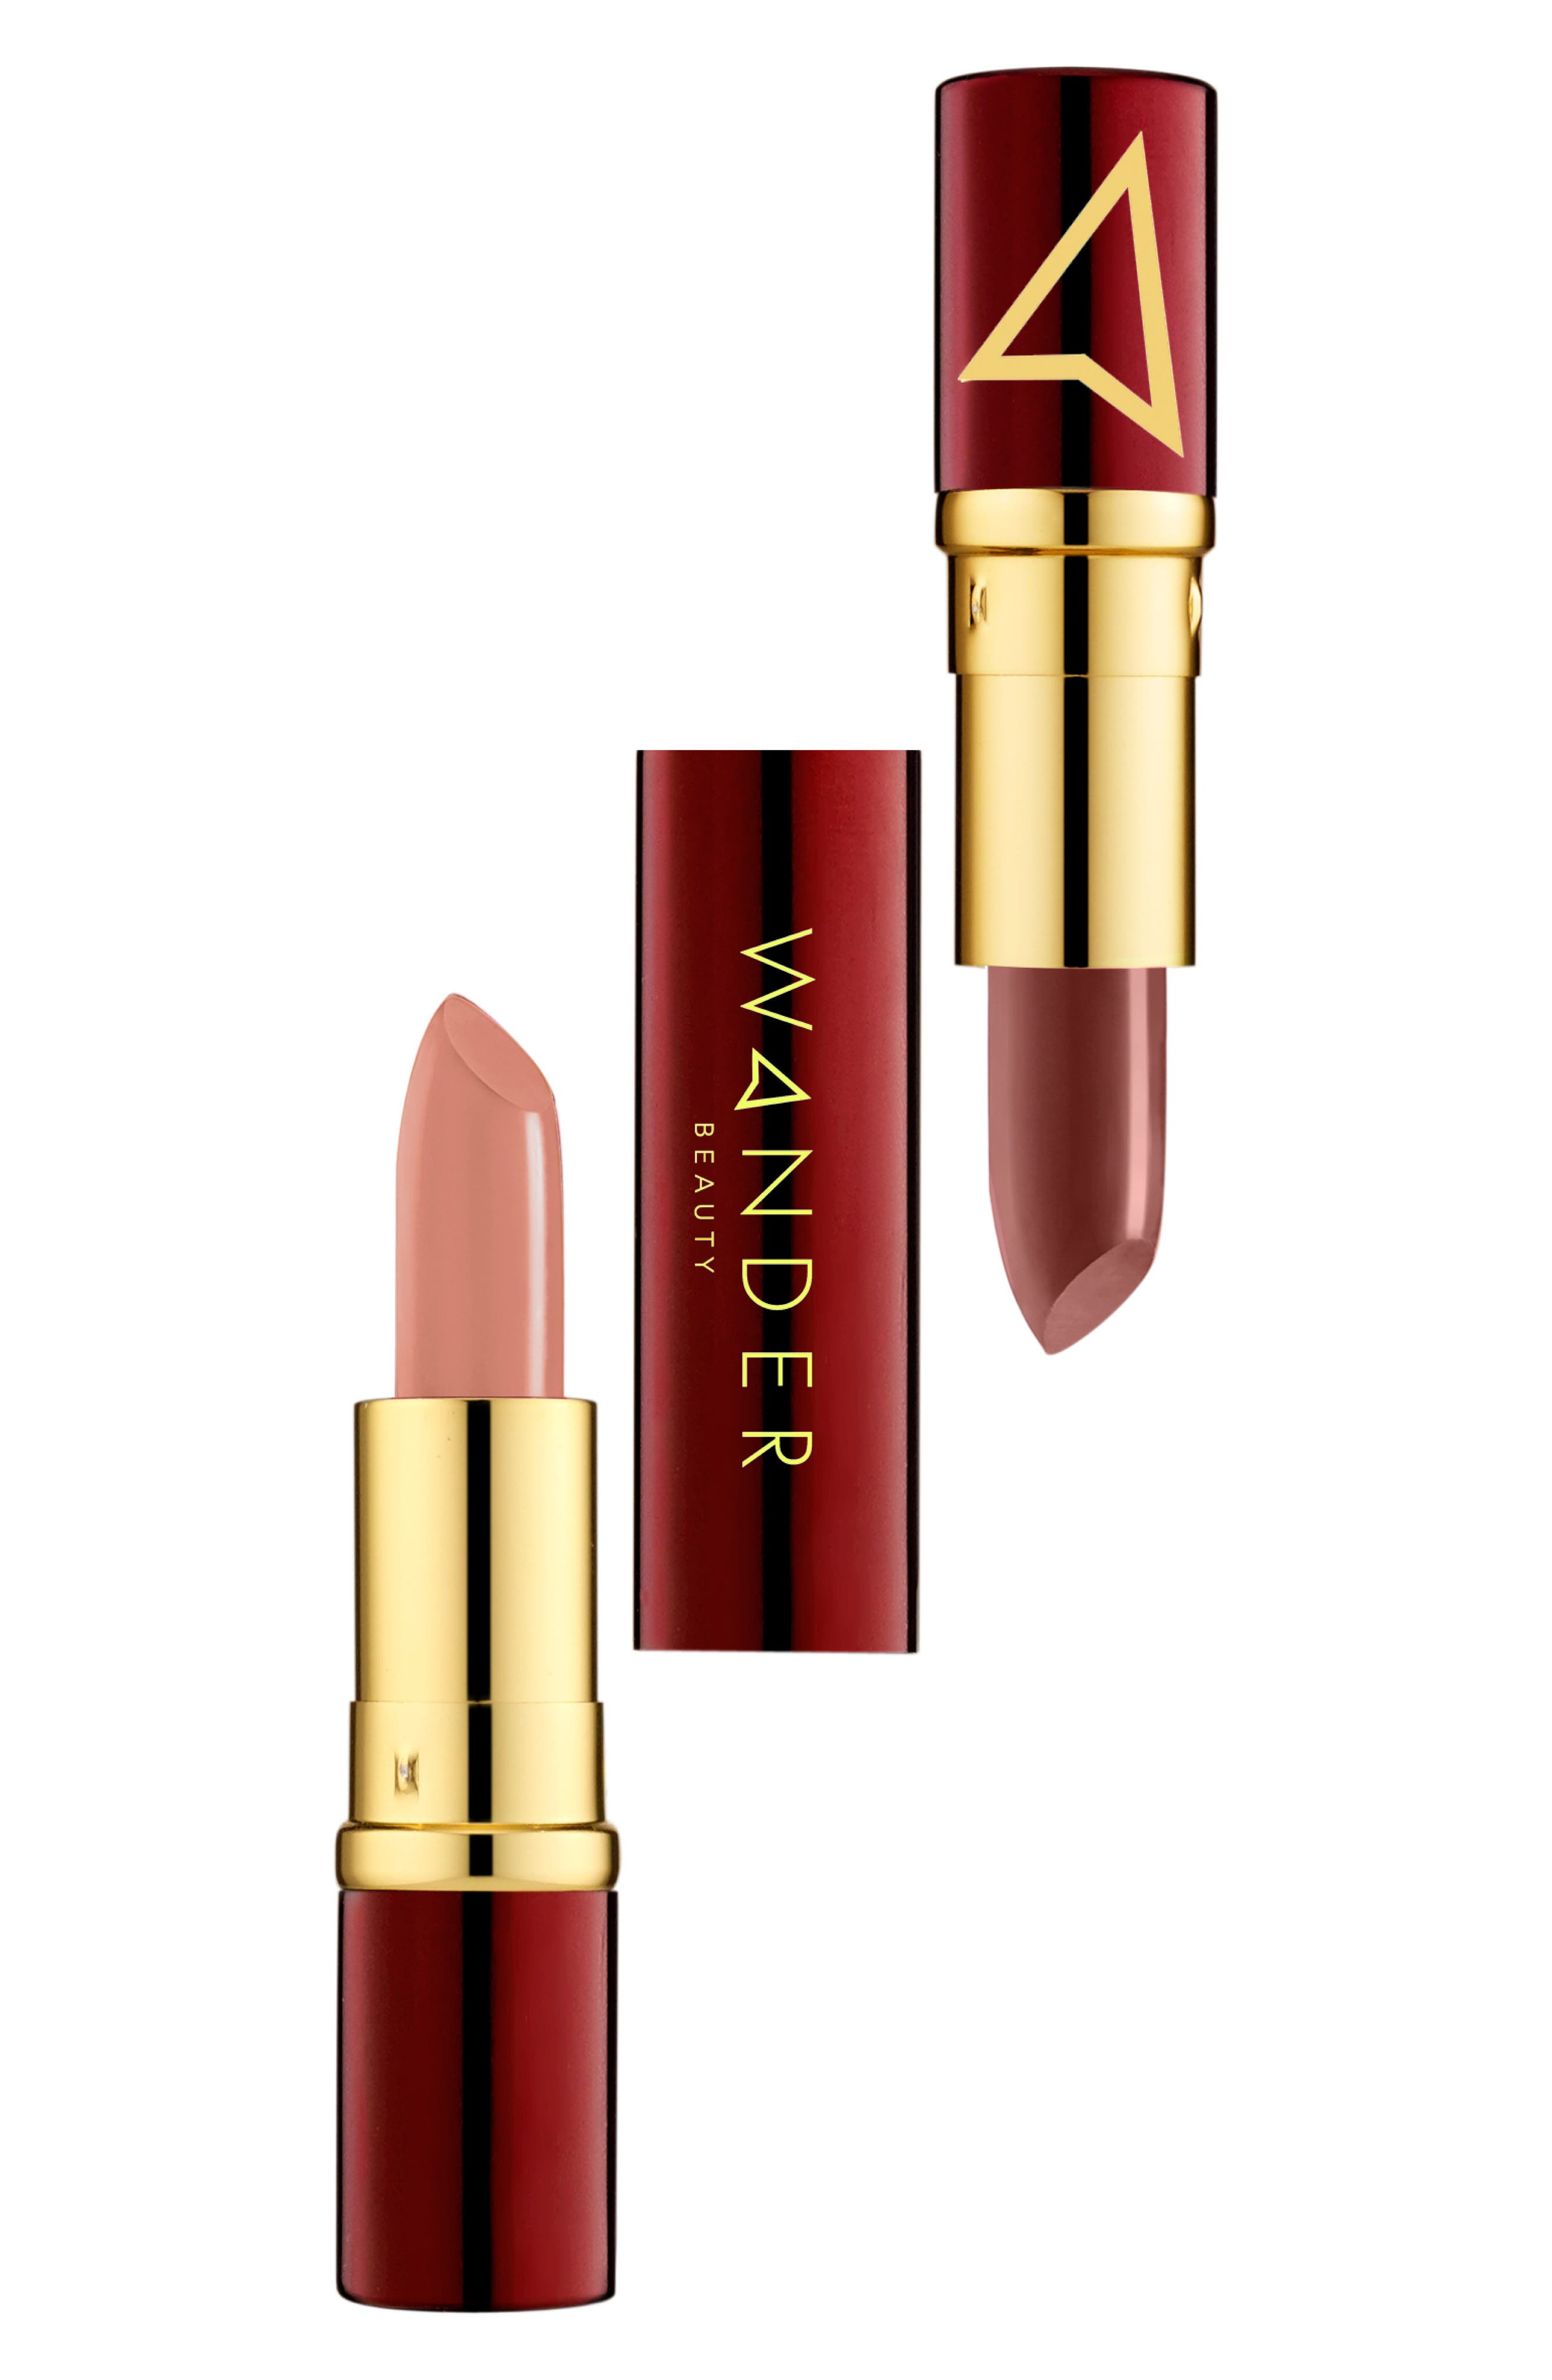 Wanderout Dual Lipstick,                         Main,                         color, GIRL BOSS/MISS BEHAVE